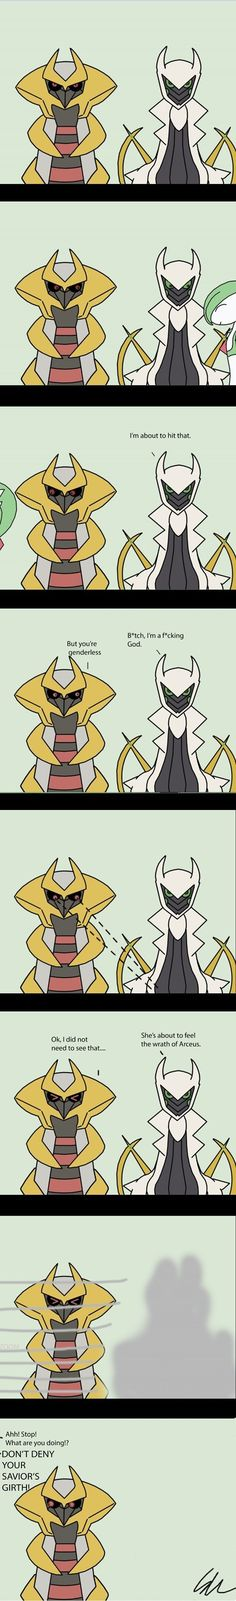 Don't Deny Arceus' Girth